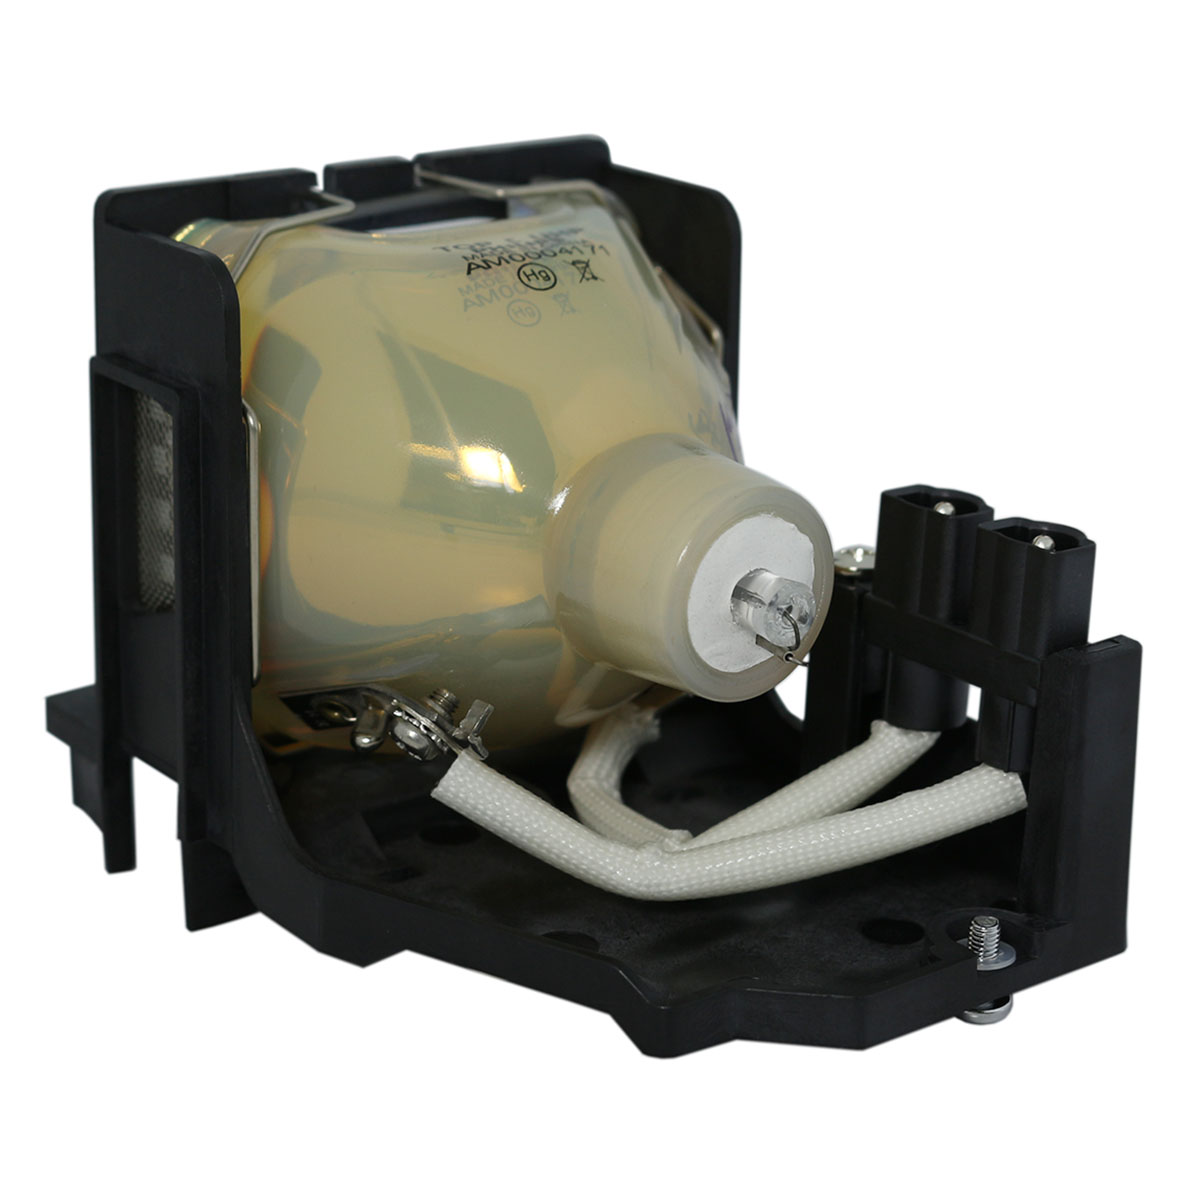 Original Philips Projector Lamp Replacement for Toshiba TLP-T601 (Bulb Only) - image 1 de 5